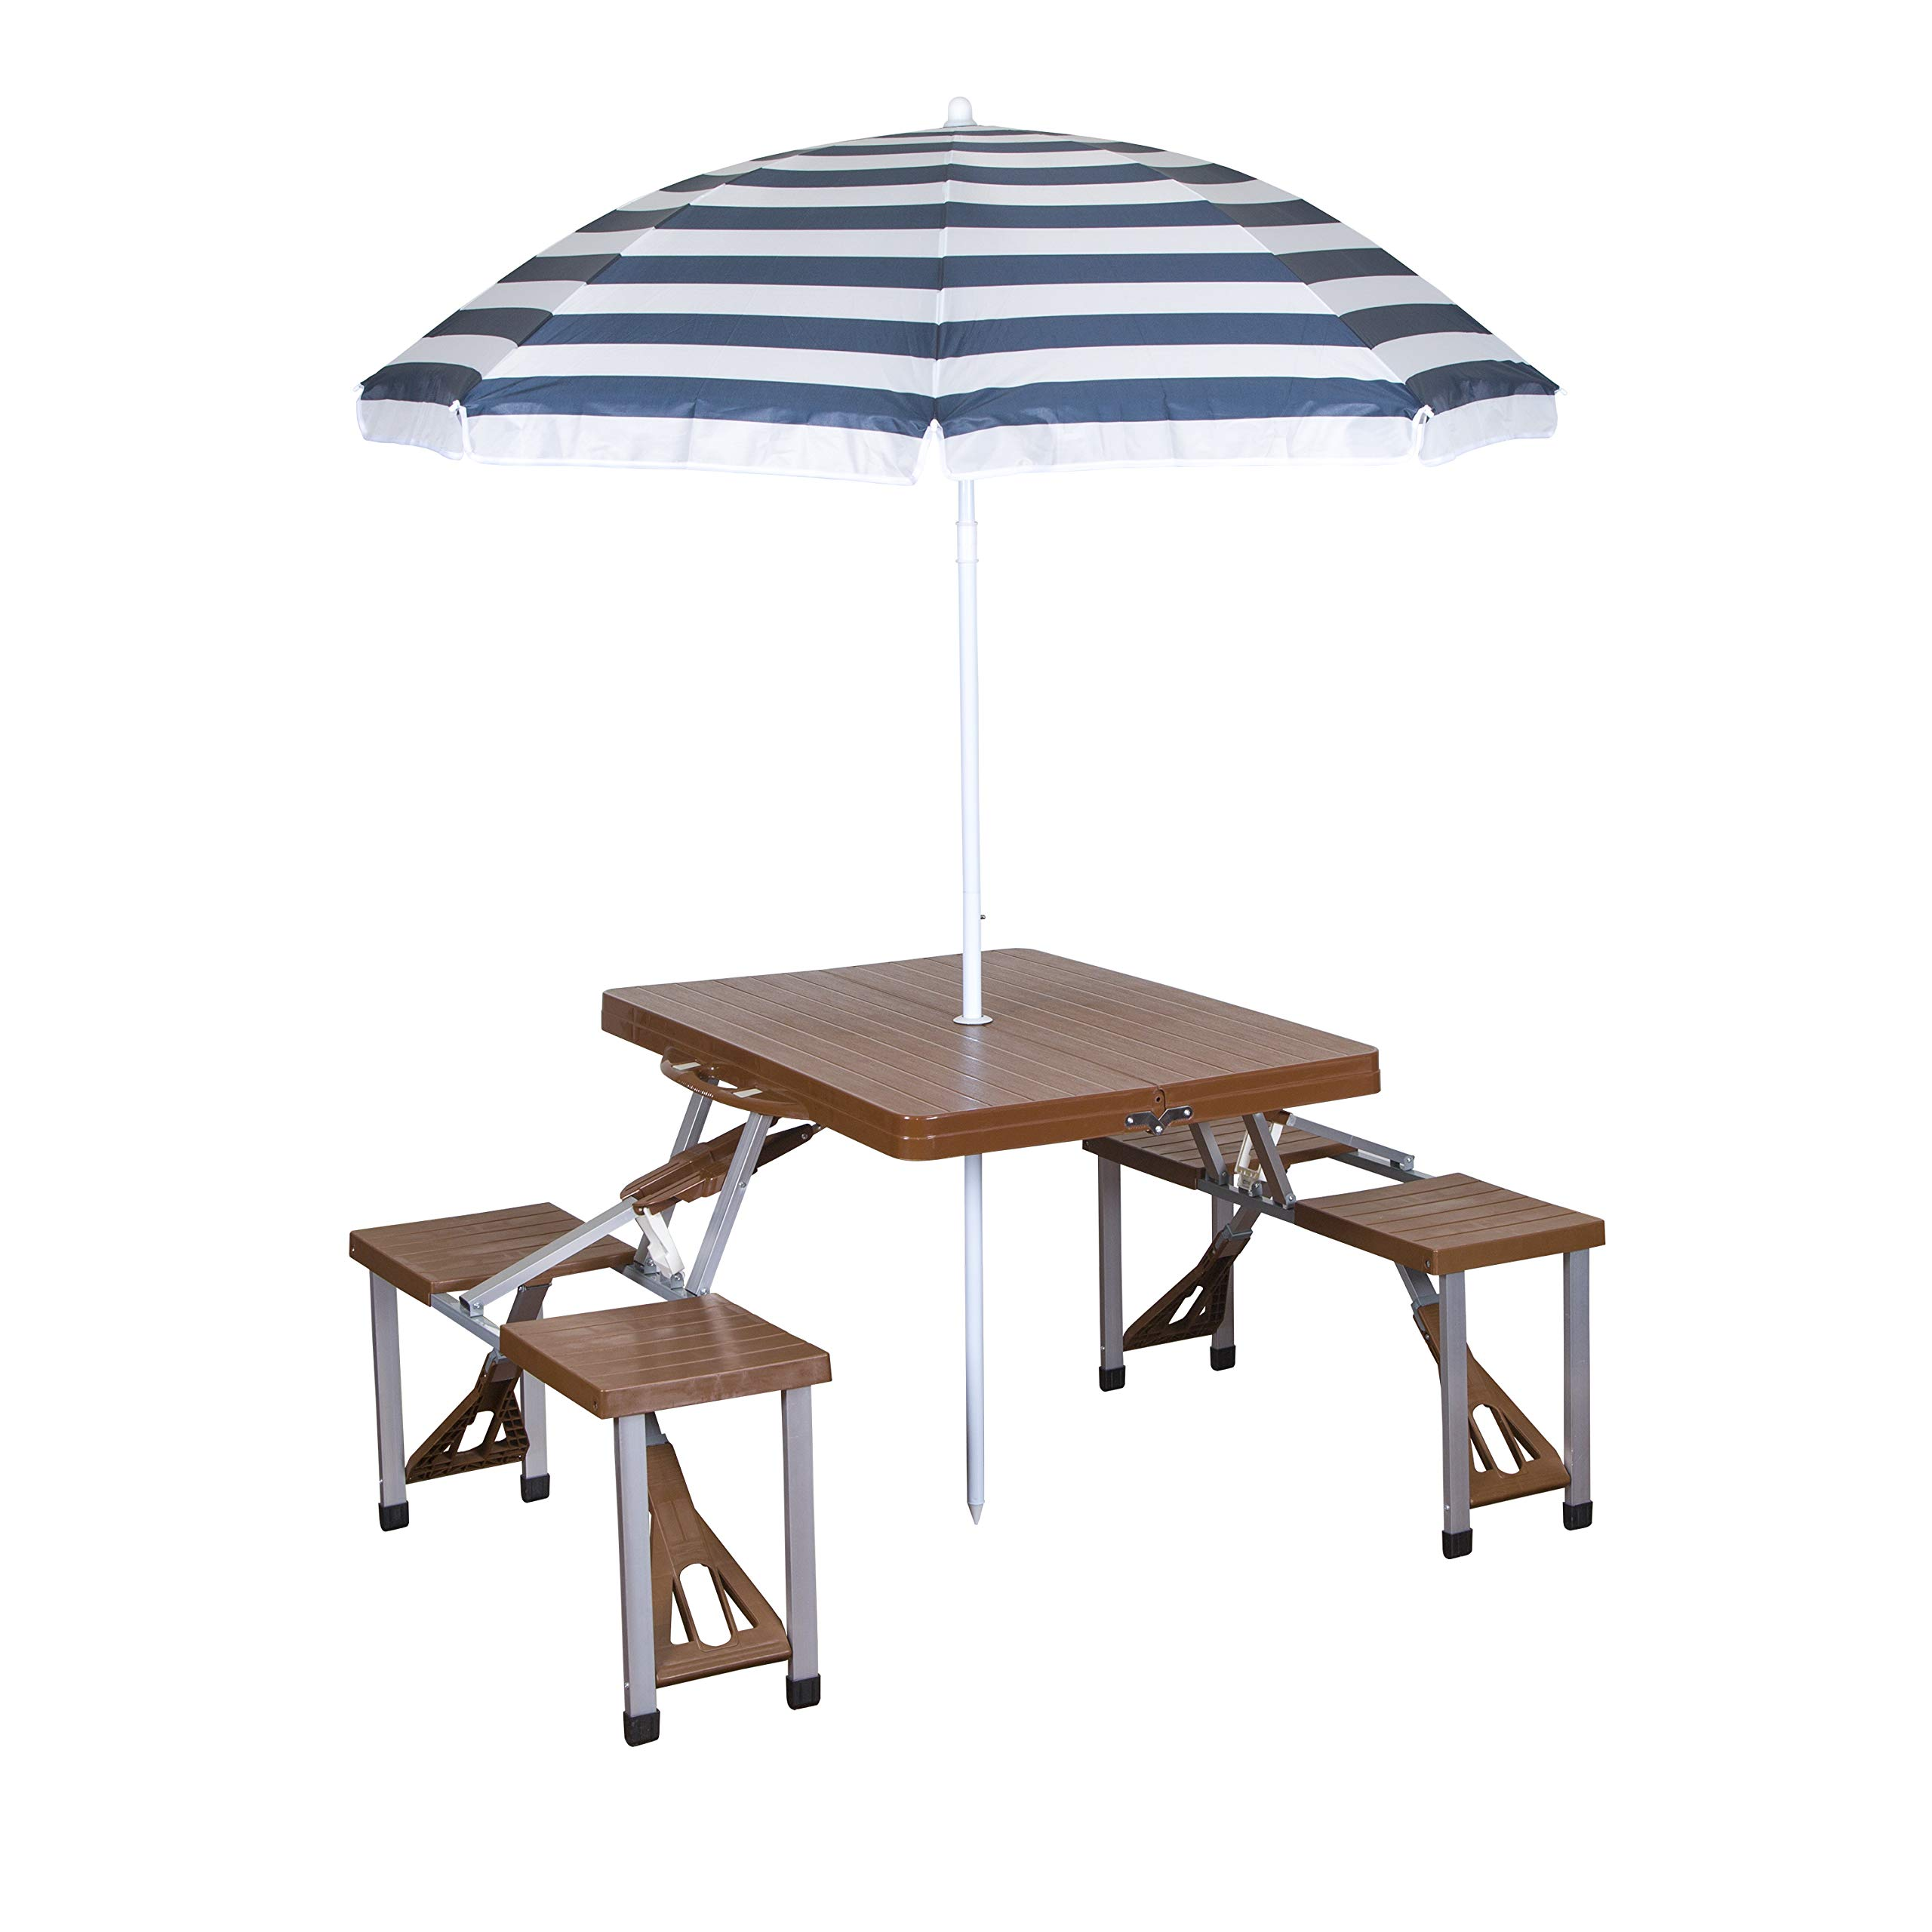 Stansport Picnic Table and Umbrella Combo, Brown Woodgrain by Stansport